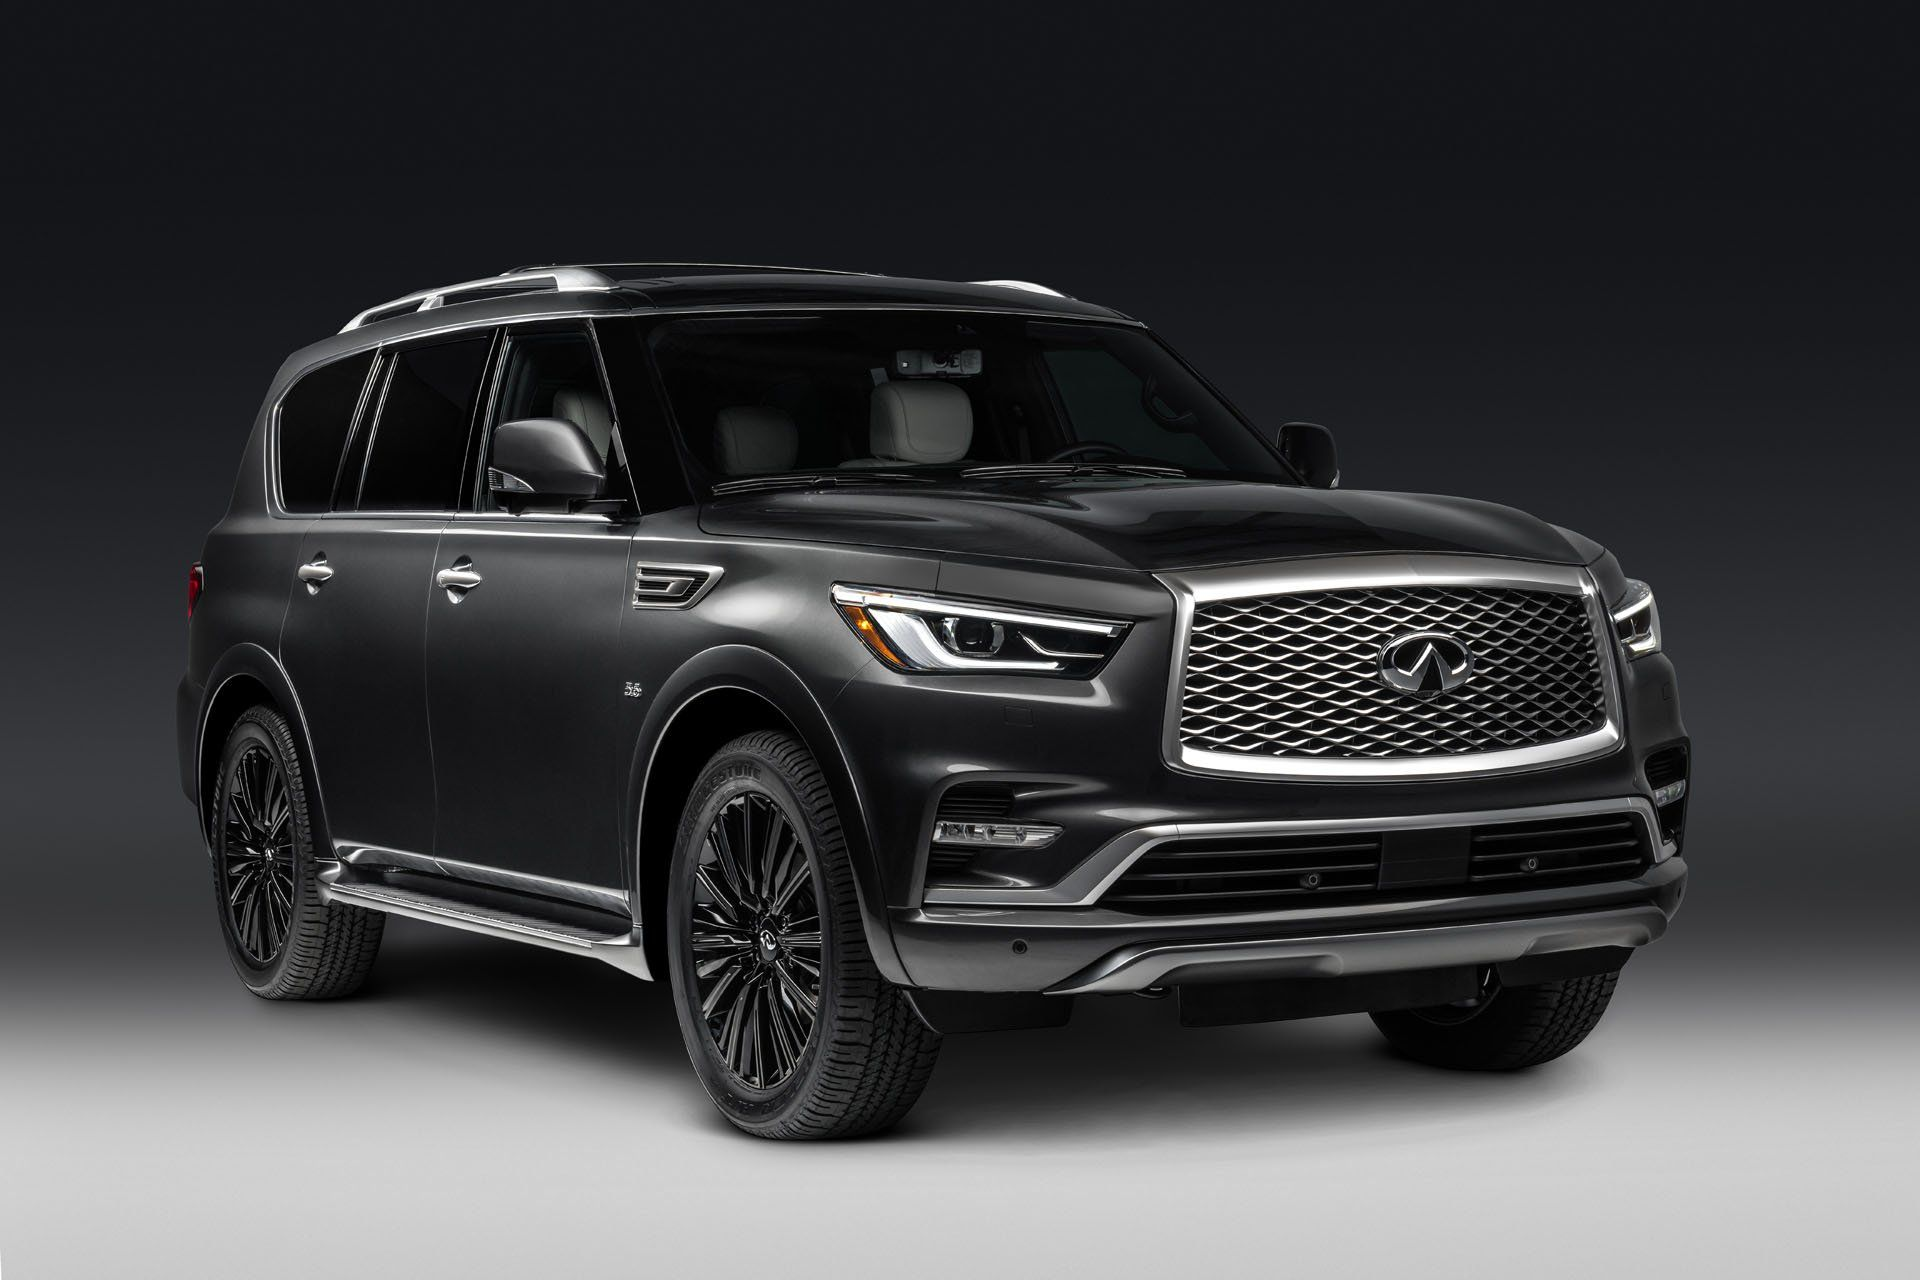 2019 Infiniti QX80 Limited Is Priciest Yet At Over 90k